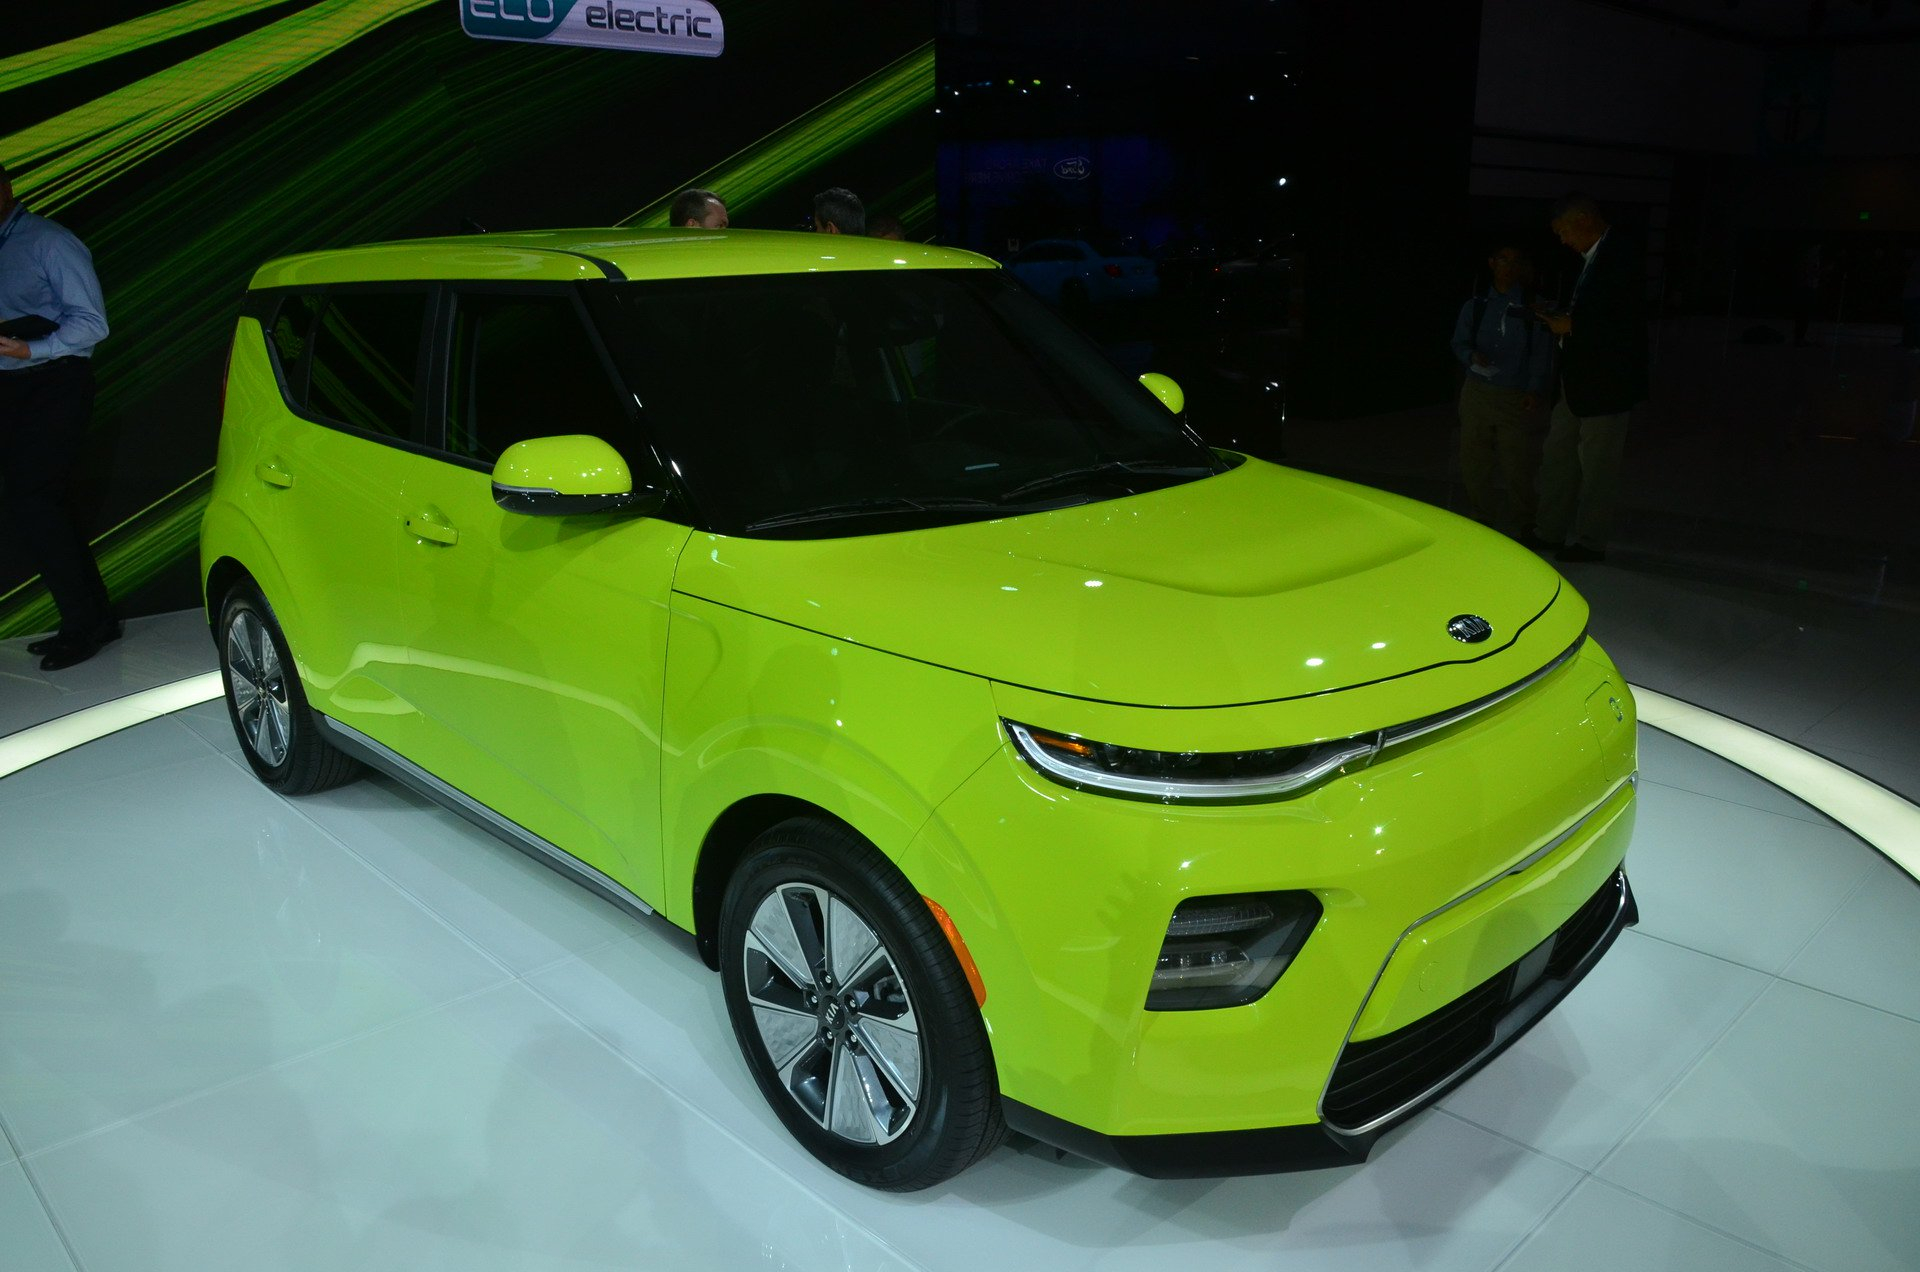 2020 Kia Soul Unveiled With New Design And An Electric - 2022 Kia Soul Hybrid Redesign, Automatic Specs, Rumor